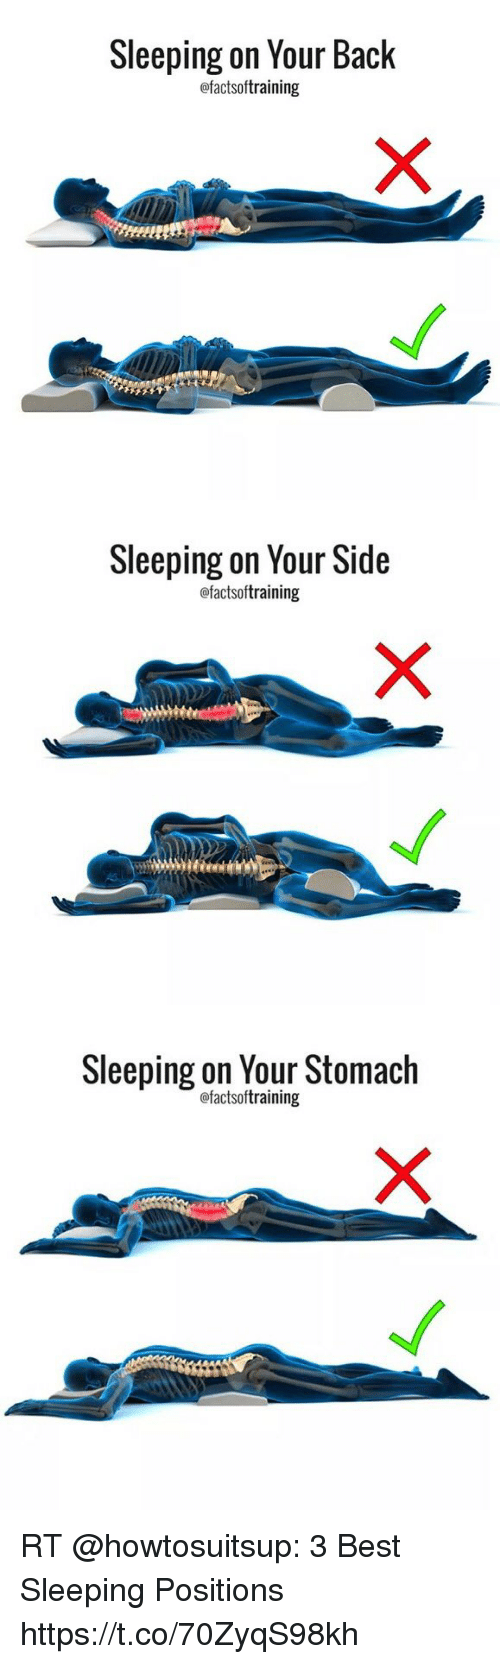 What Is Your Favorite Sleeping Position Quora